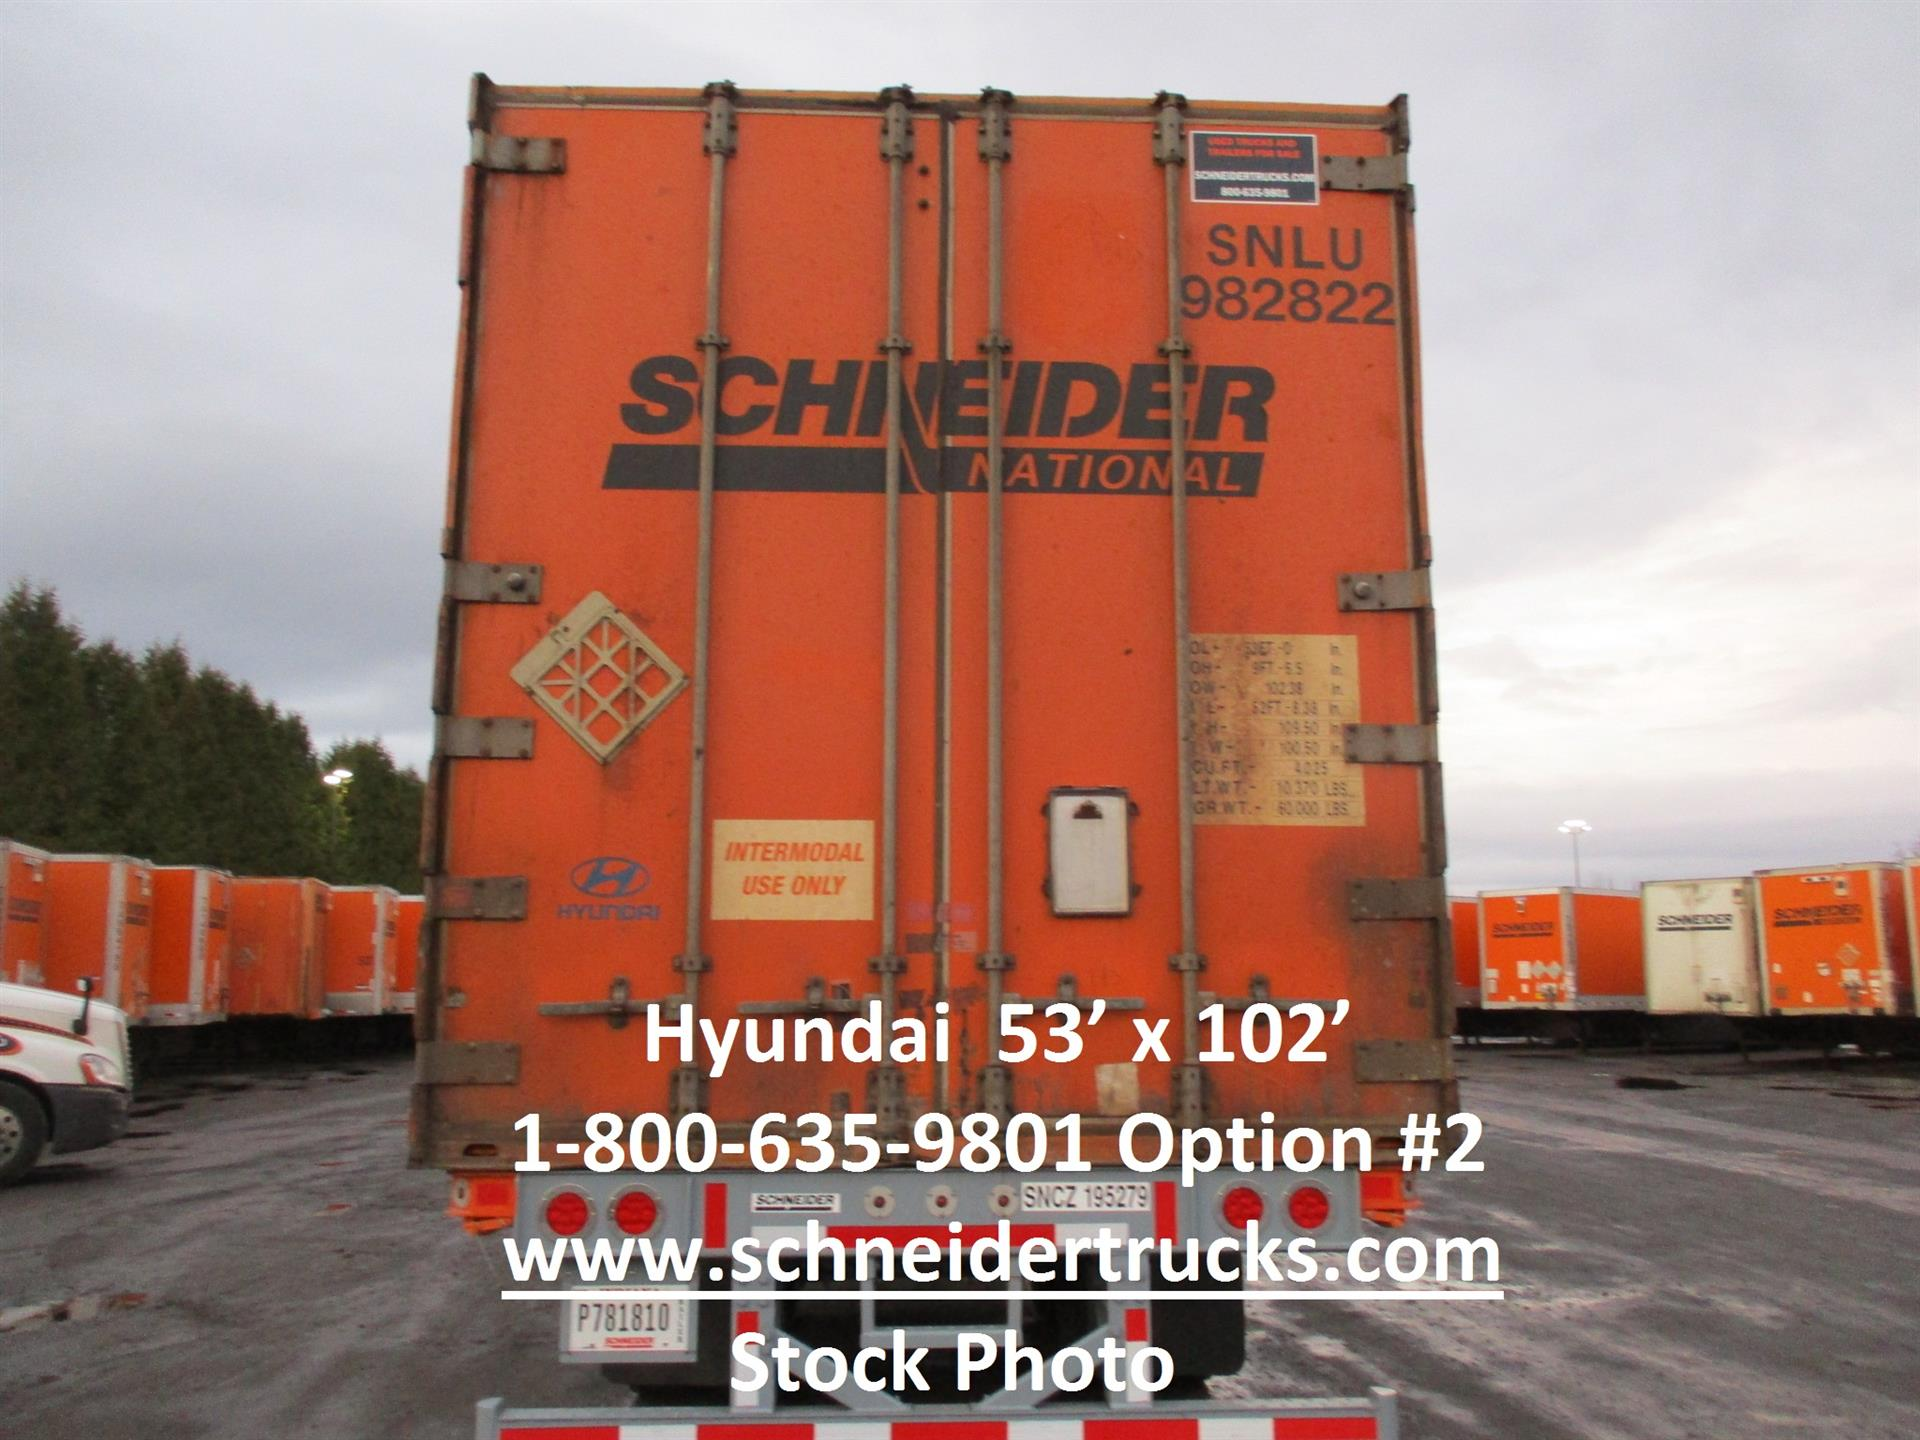 2006 Hyundai Container for sale-59290860